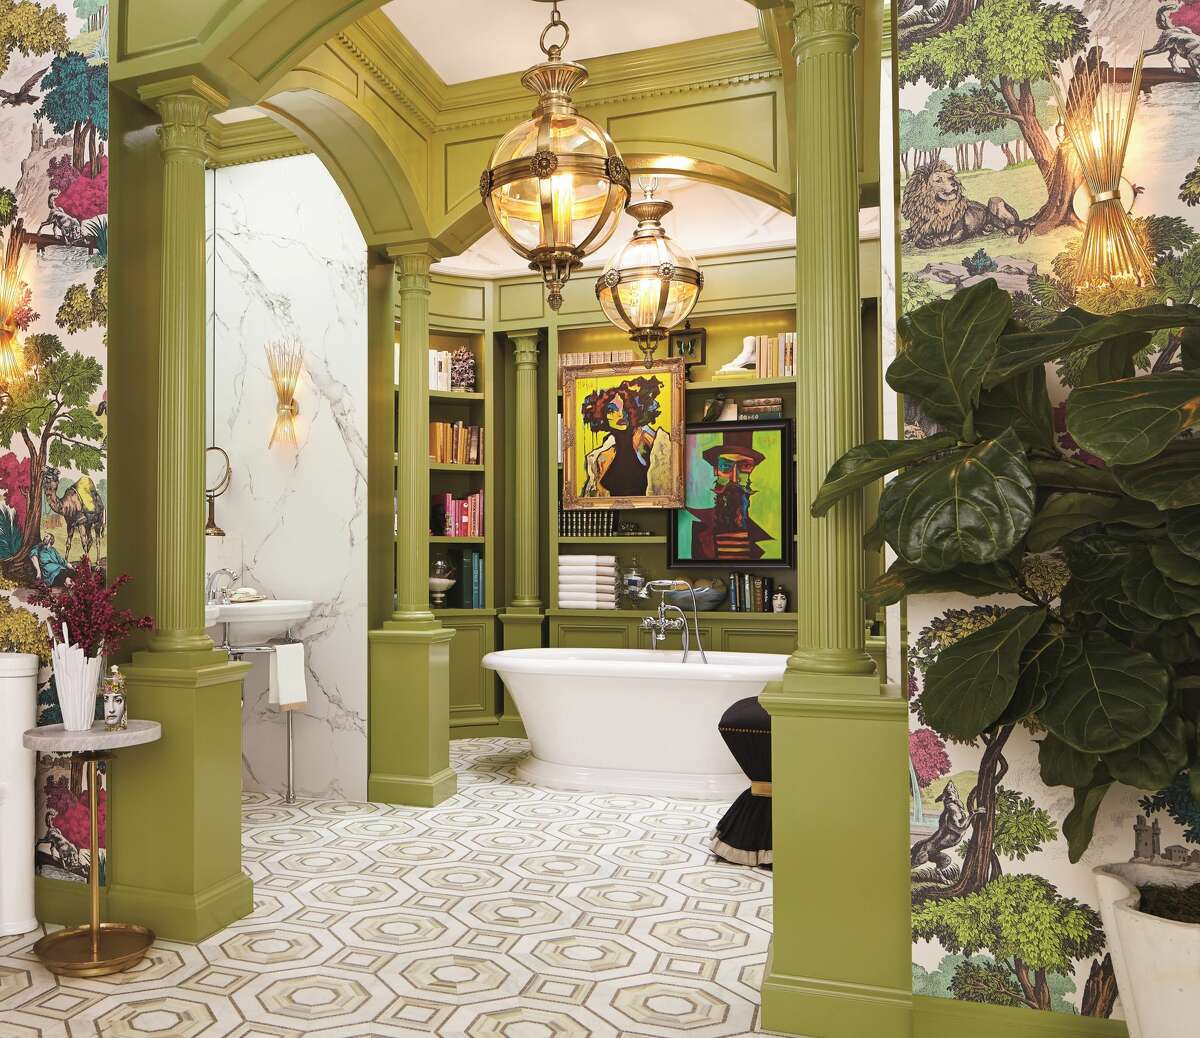 """Photo of a bathroom featured in interior designer Corey Damen Jenkins new book, """"Design Remix."""" Jenkins will be the keynote speaker at Fall Design Week on Oct. 5."""